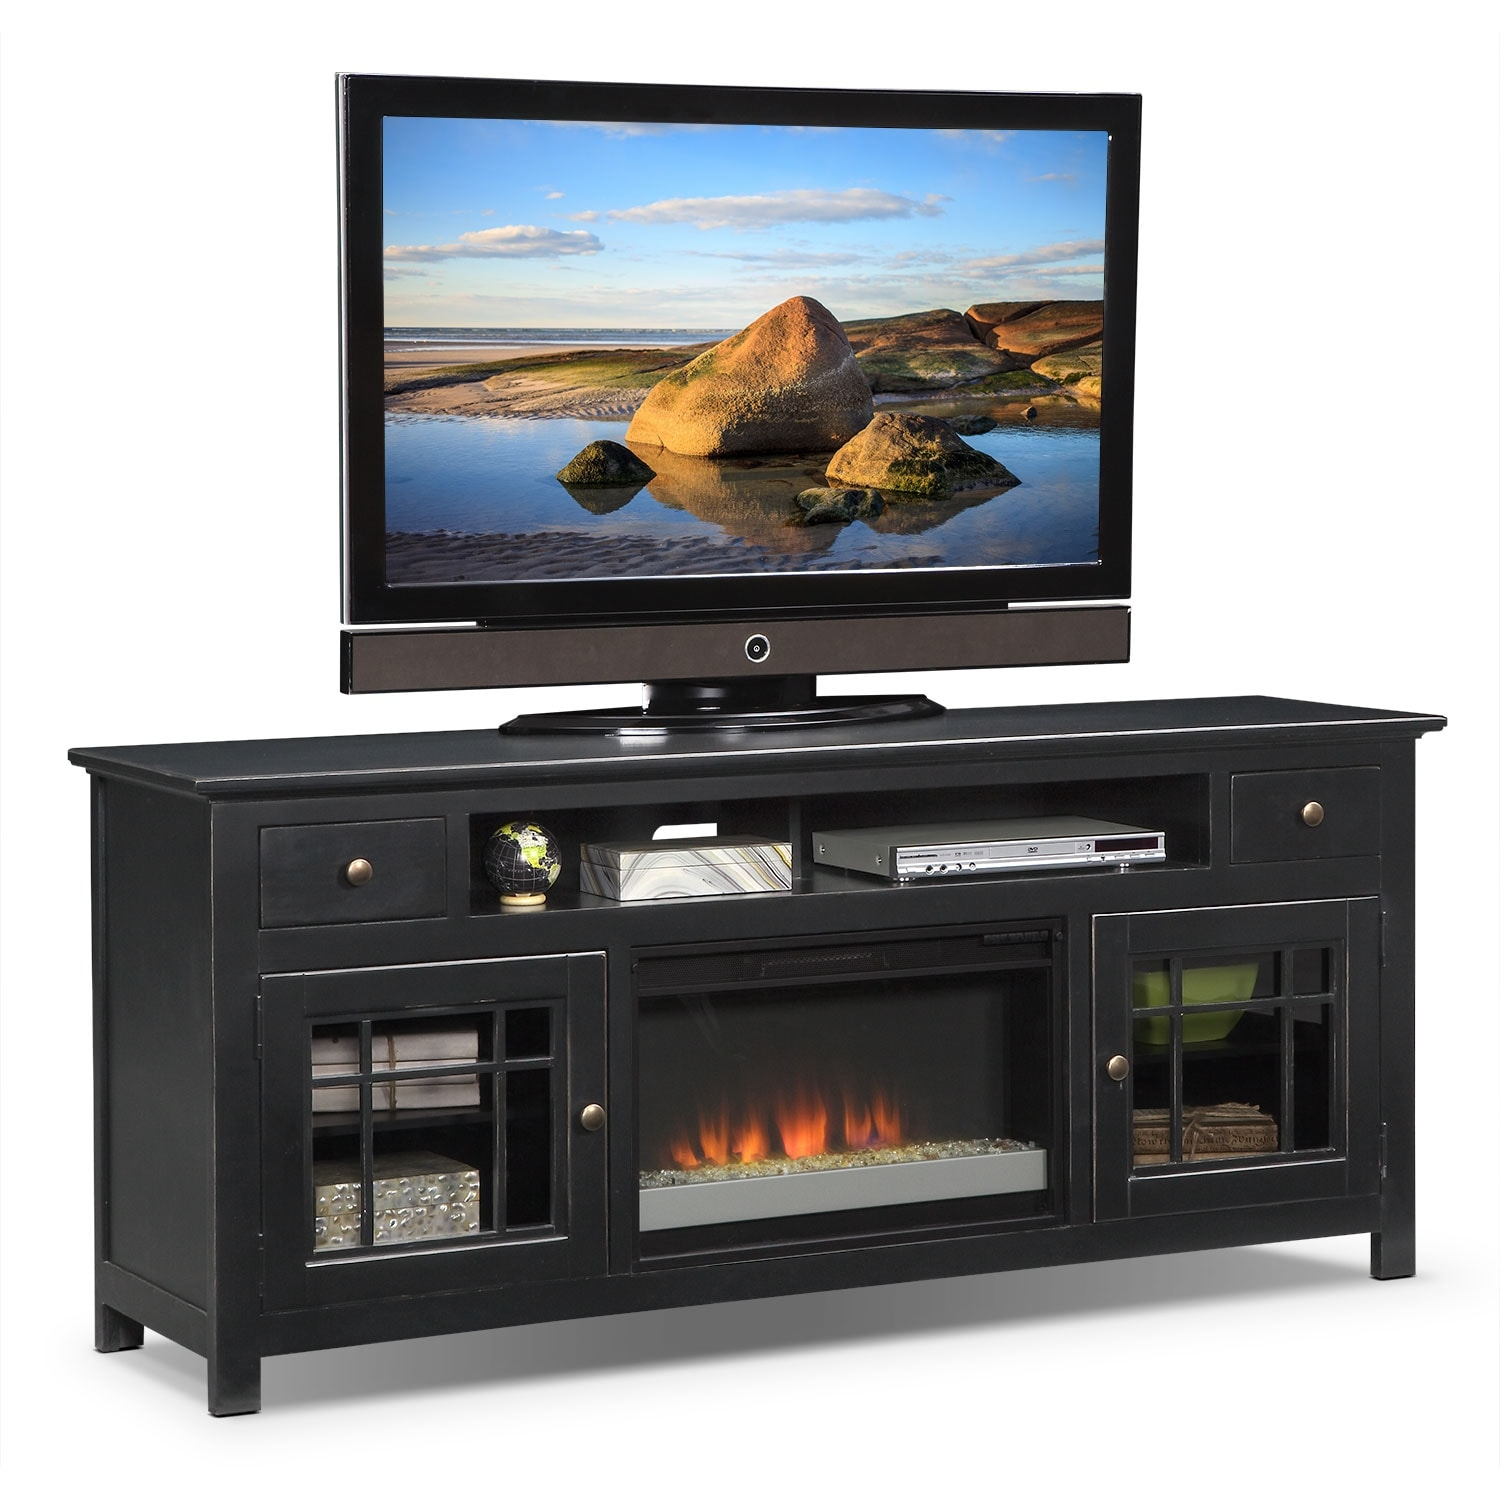 Merrick 74 Fireplace Tv Stand With Contemporary Insert Black Value City Furniture